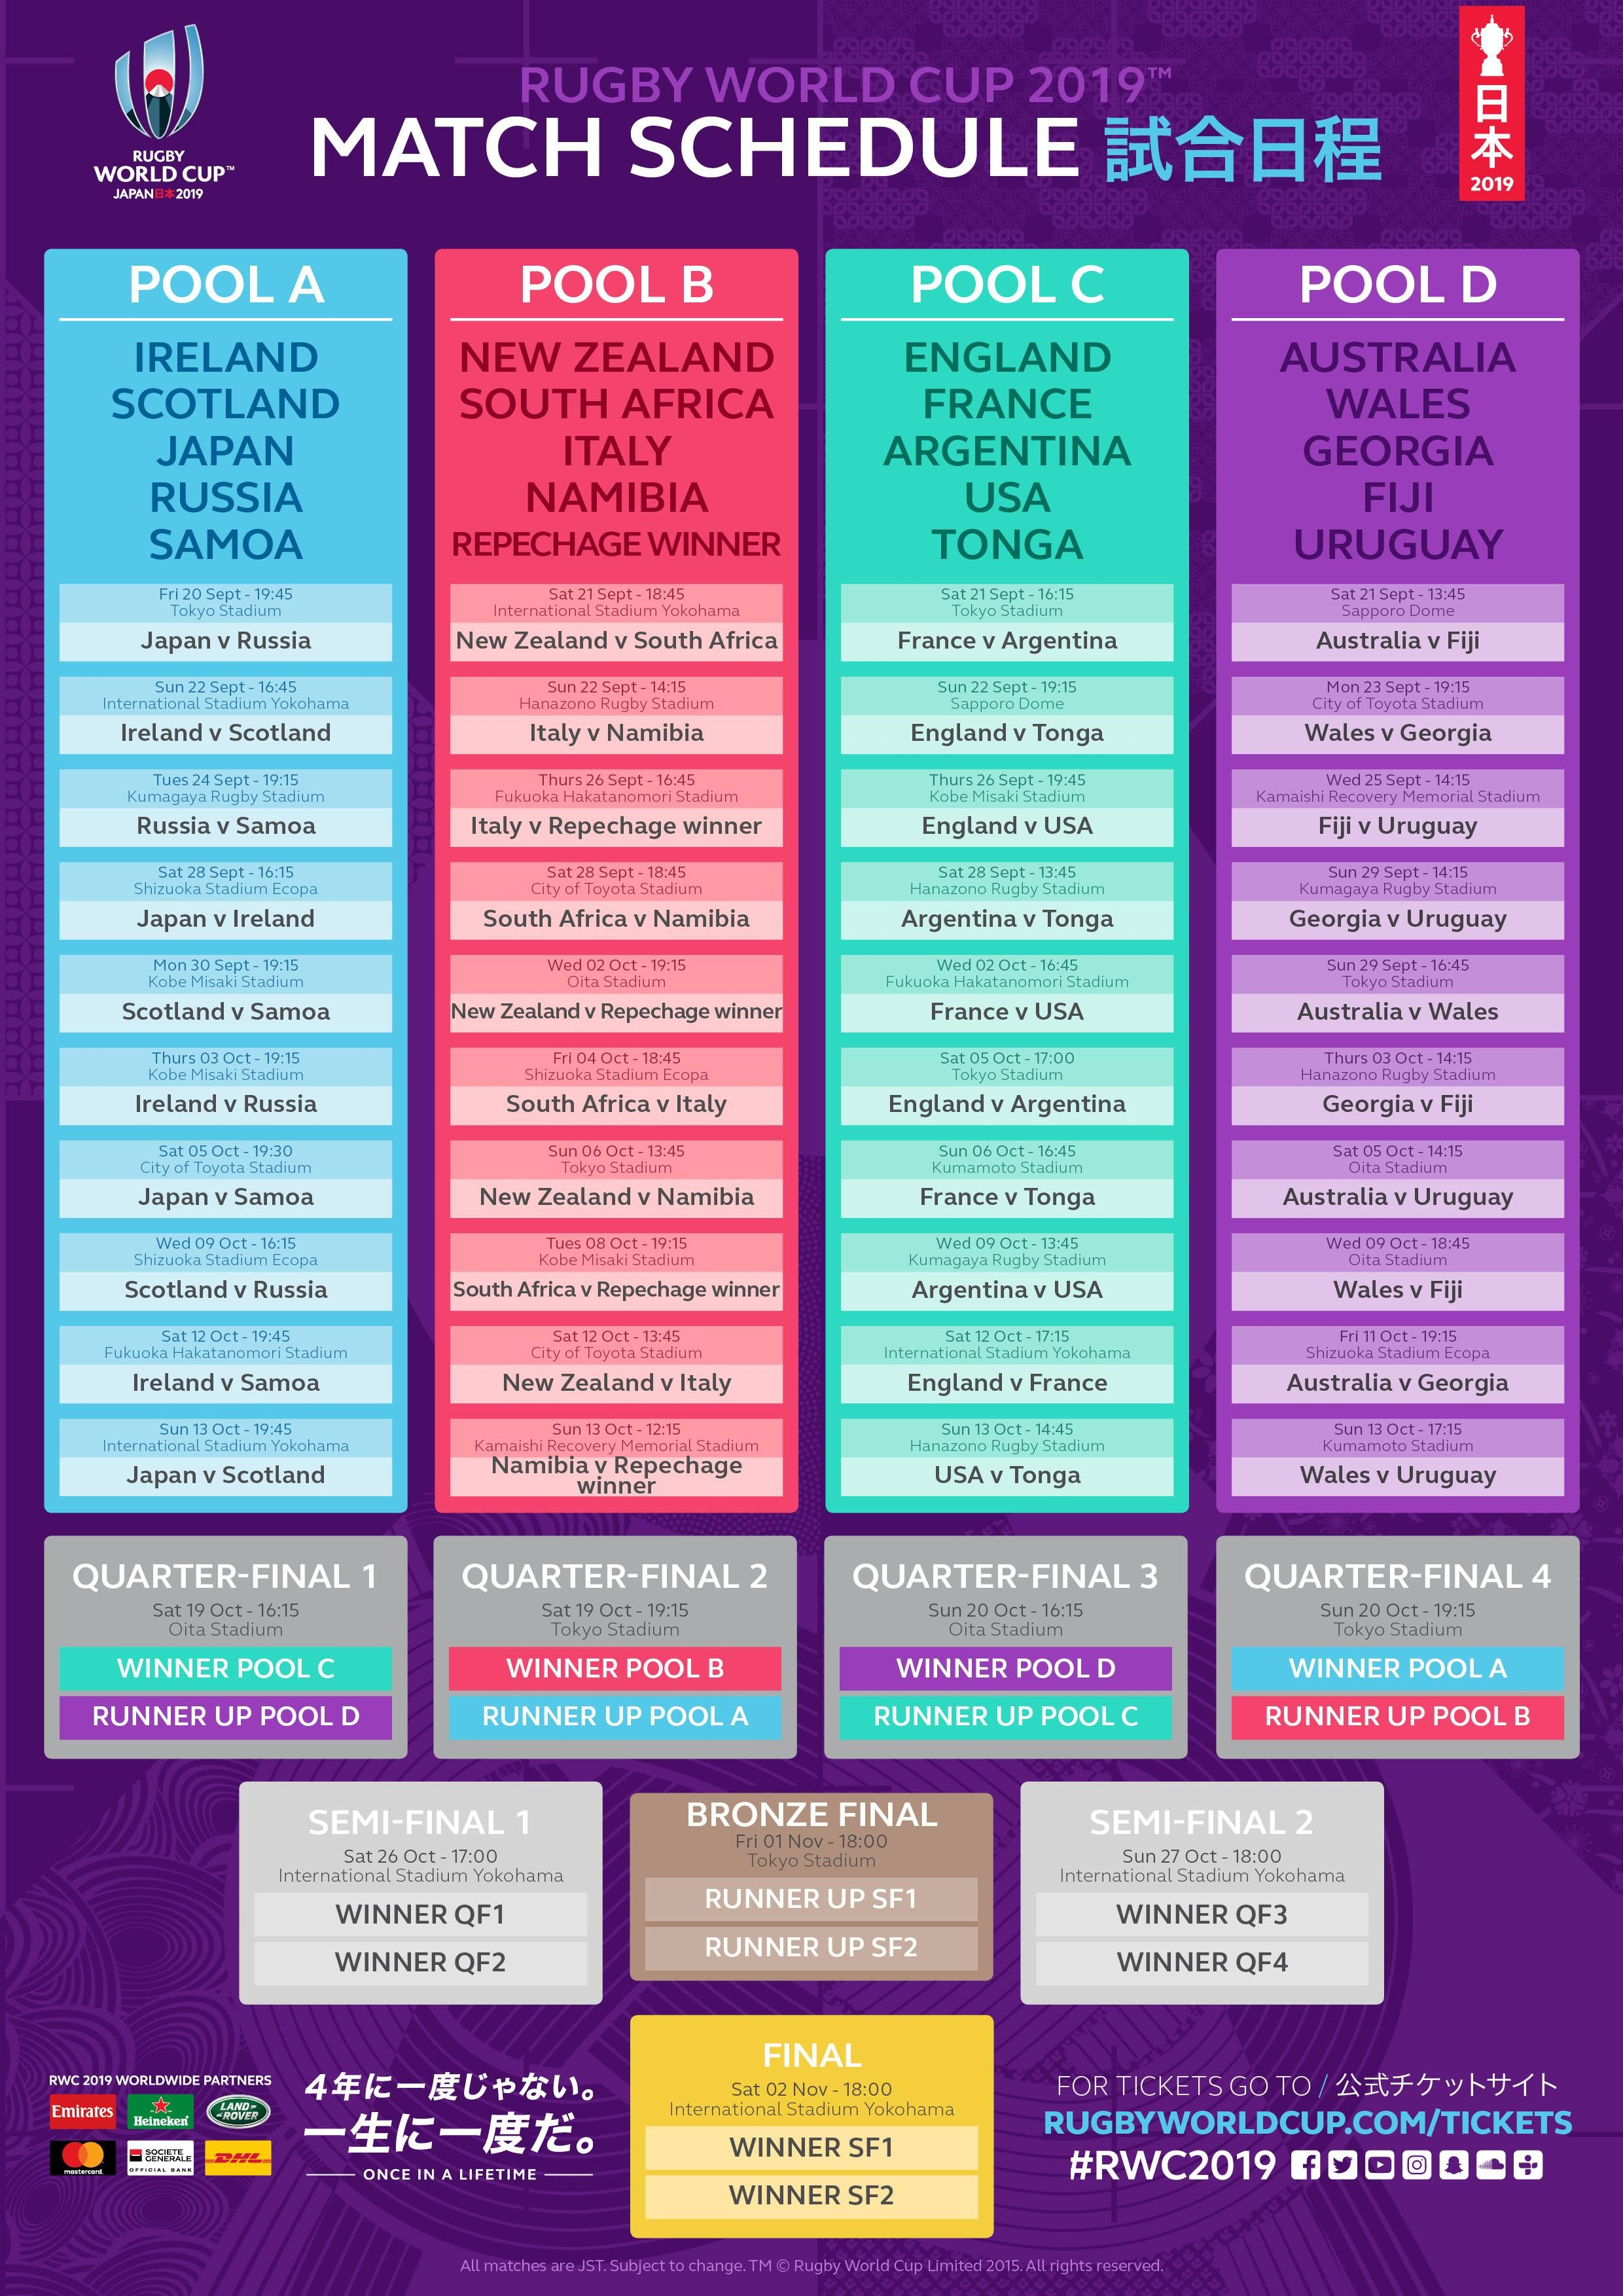 World Cup Rugby Match Schedule World Cup Fixtures World Cup Schedule Rugby World Cup